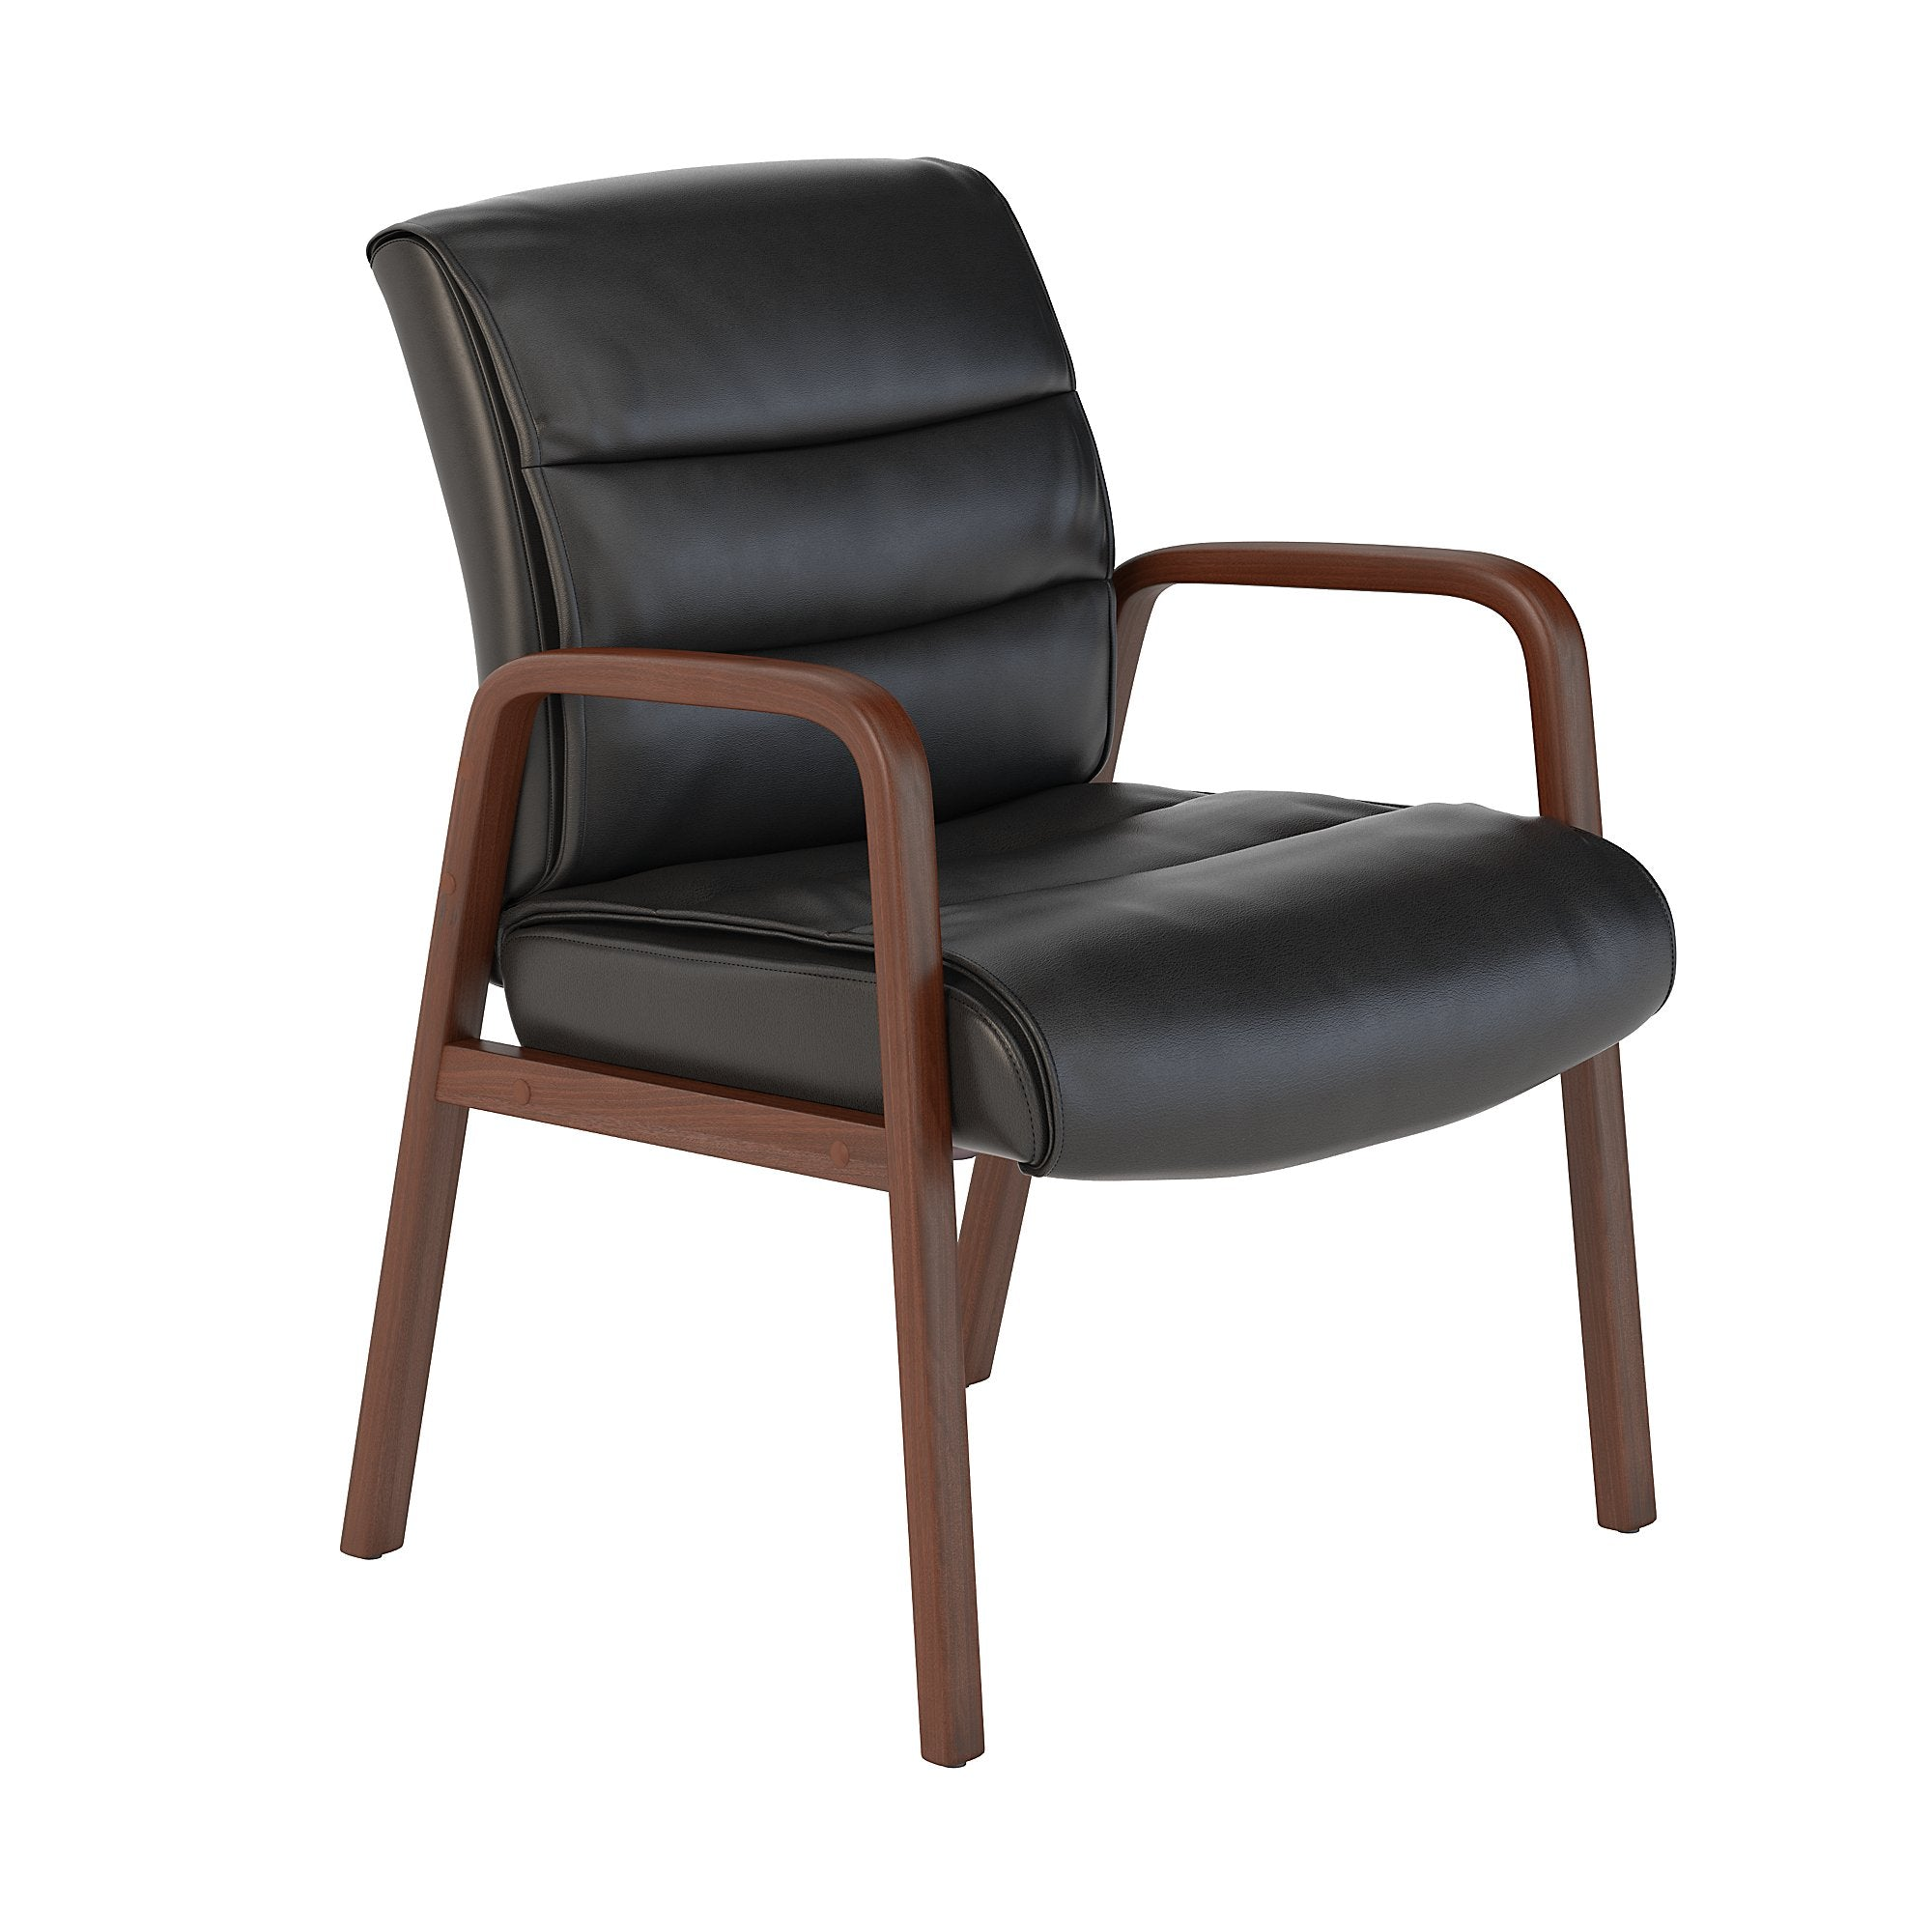 CH1502BLL-03 Bush Business Furniture Soft Sense Black Leather Guest Chair with Wood Arms